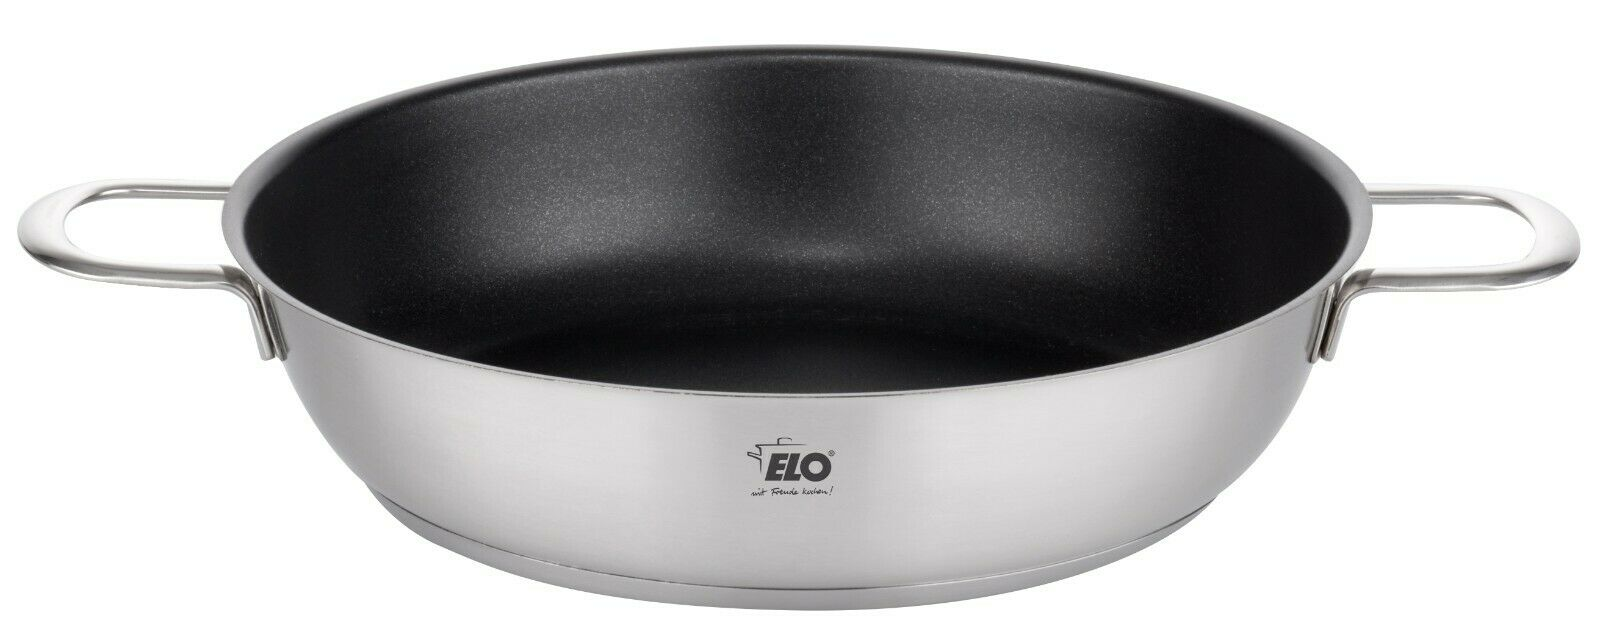 ELO Germany Platin Stainless Steel Induction Roasting Pan wi